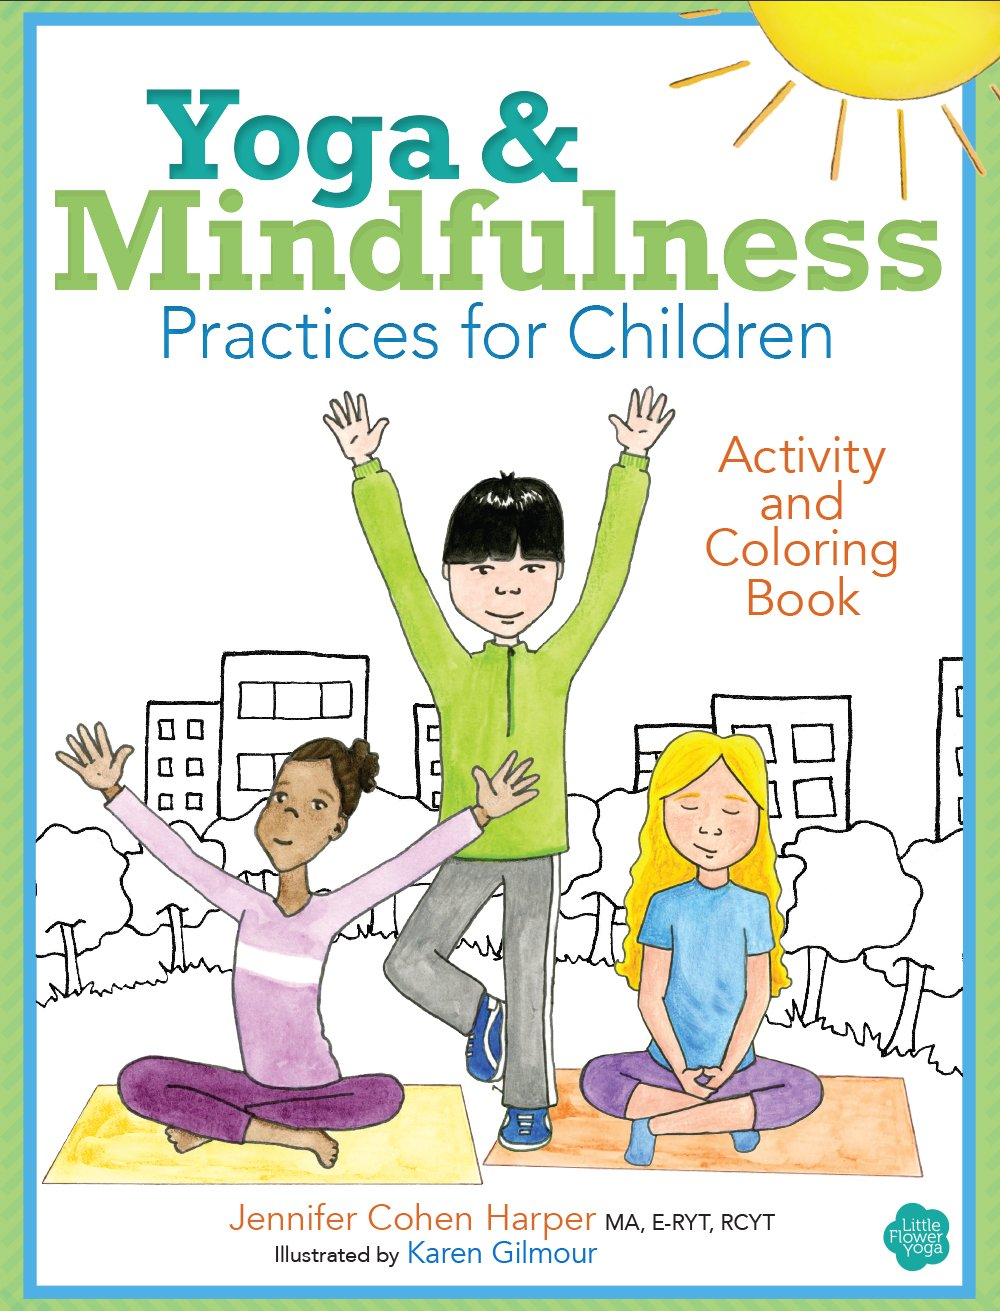 Little book of coloring for mindfulness - Yoga And Mindfulness Practices For Children Activity And Coloring Book Jennifer Cohen Harper 9781683730453 Amazon Com Books